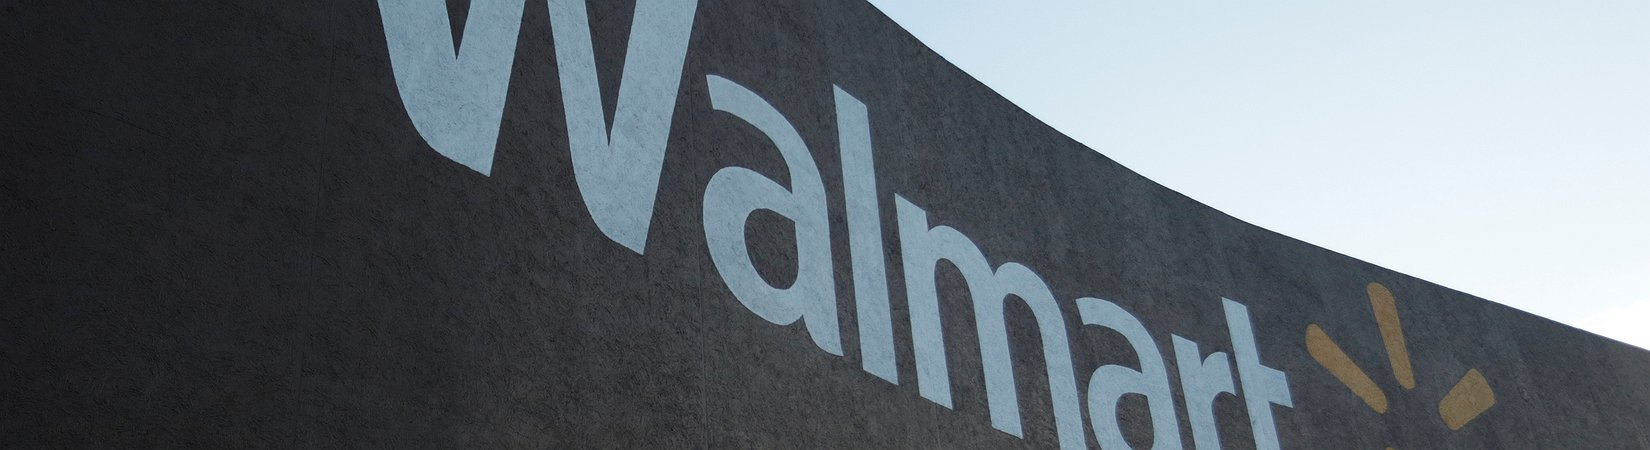 Wal-Mart to expand e-commerce business with Silicon Valley investment arm